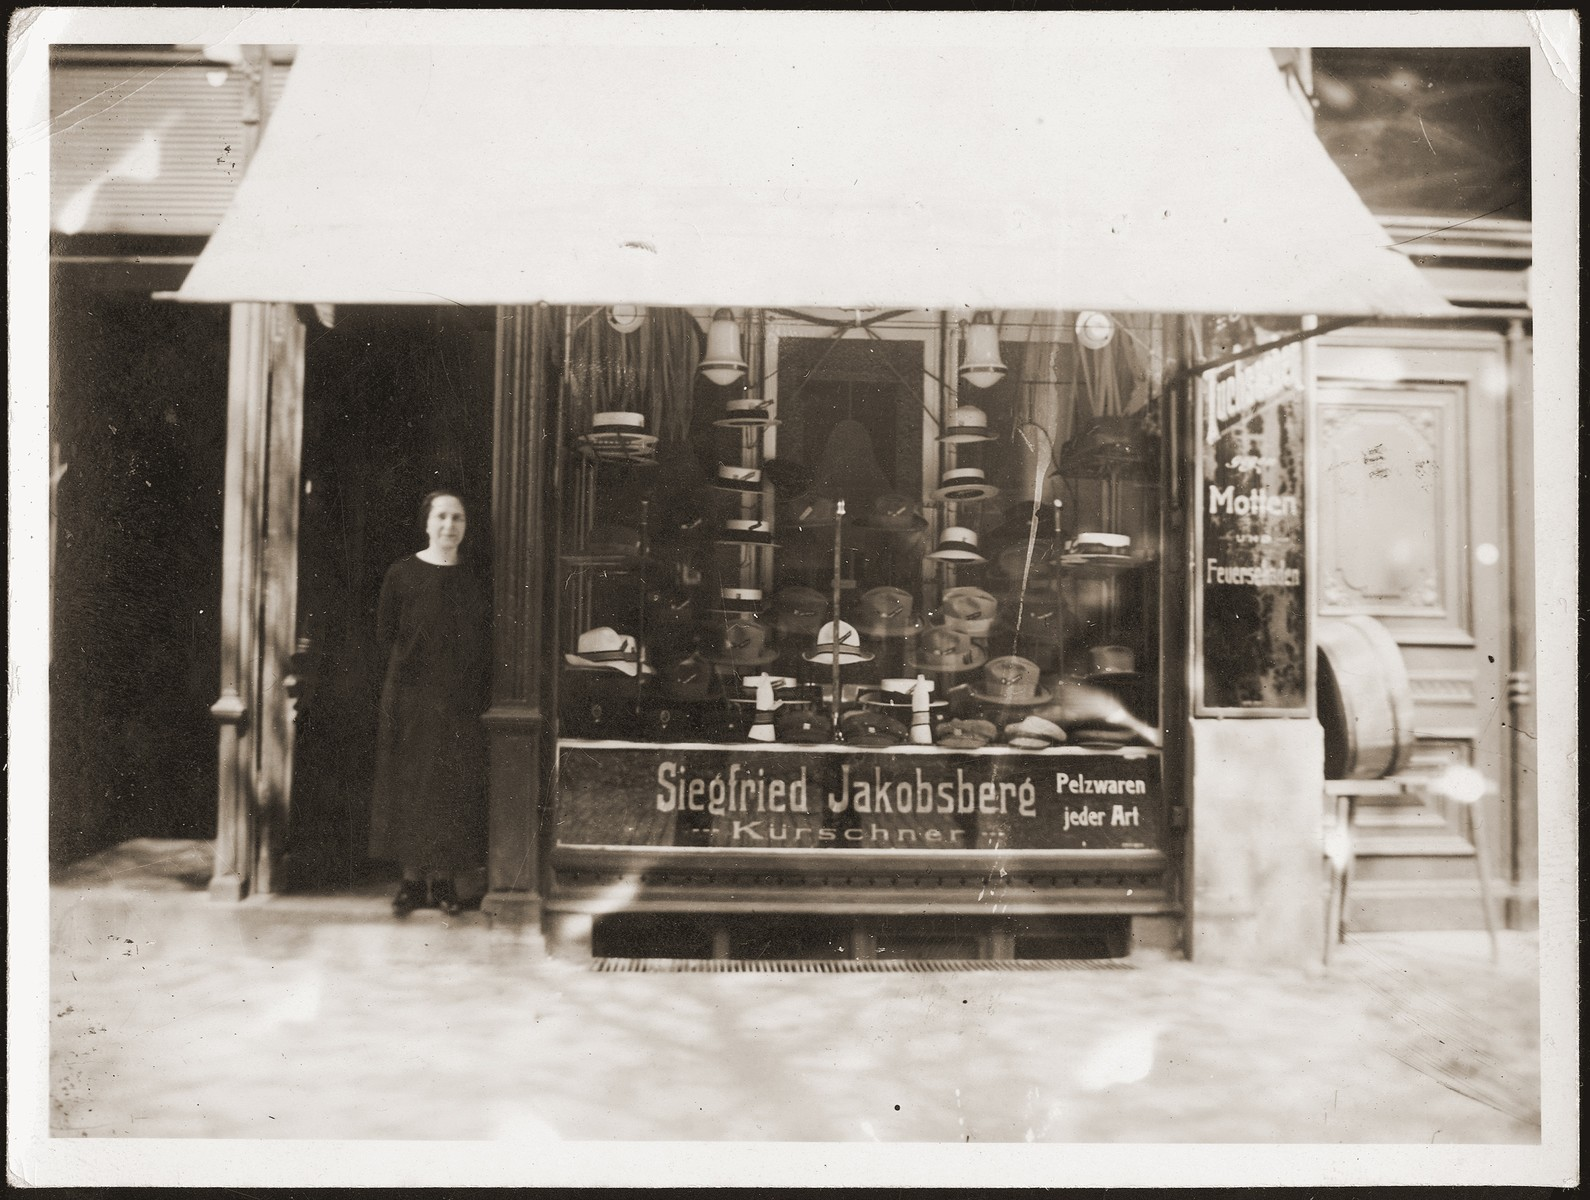 Betti Jacobsberg stands in the doorway of their fur store in Stettin.